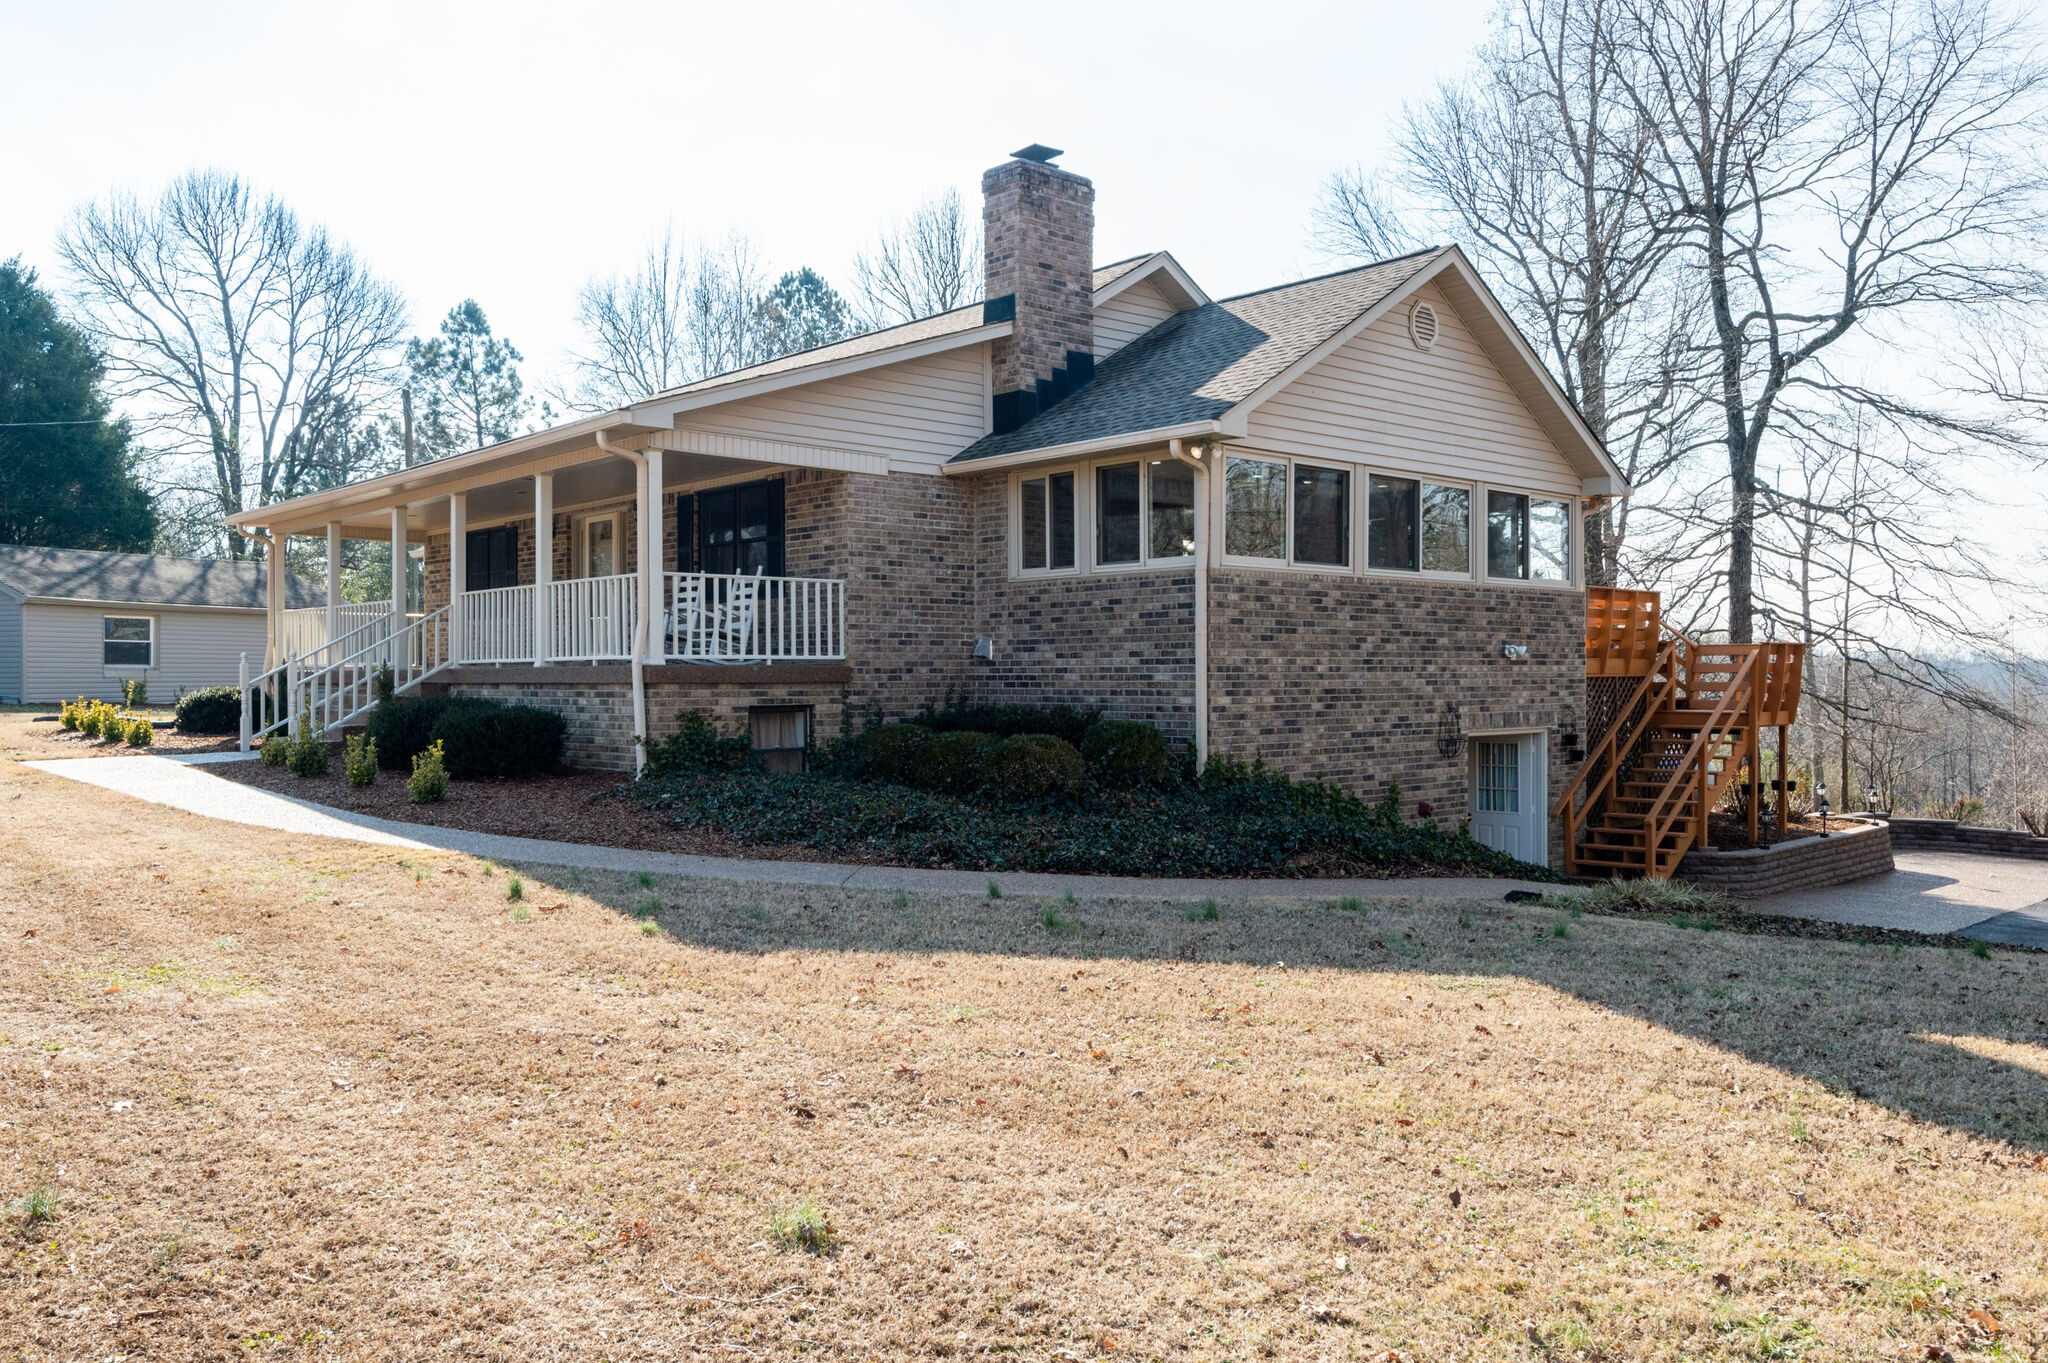 6147 Marrowbone Lake Rd Property Photo - Joelton, TN real estate listing